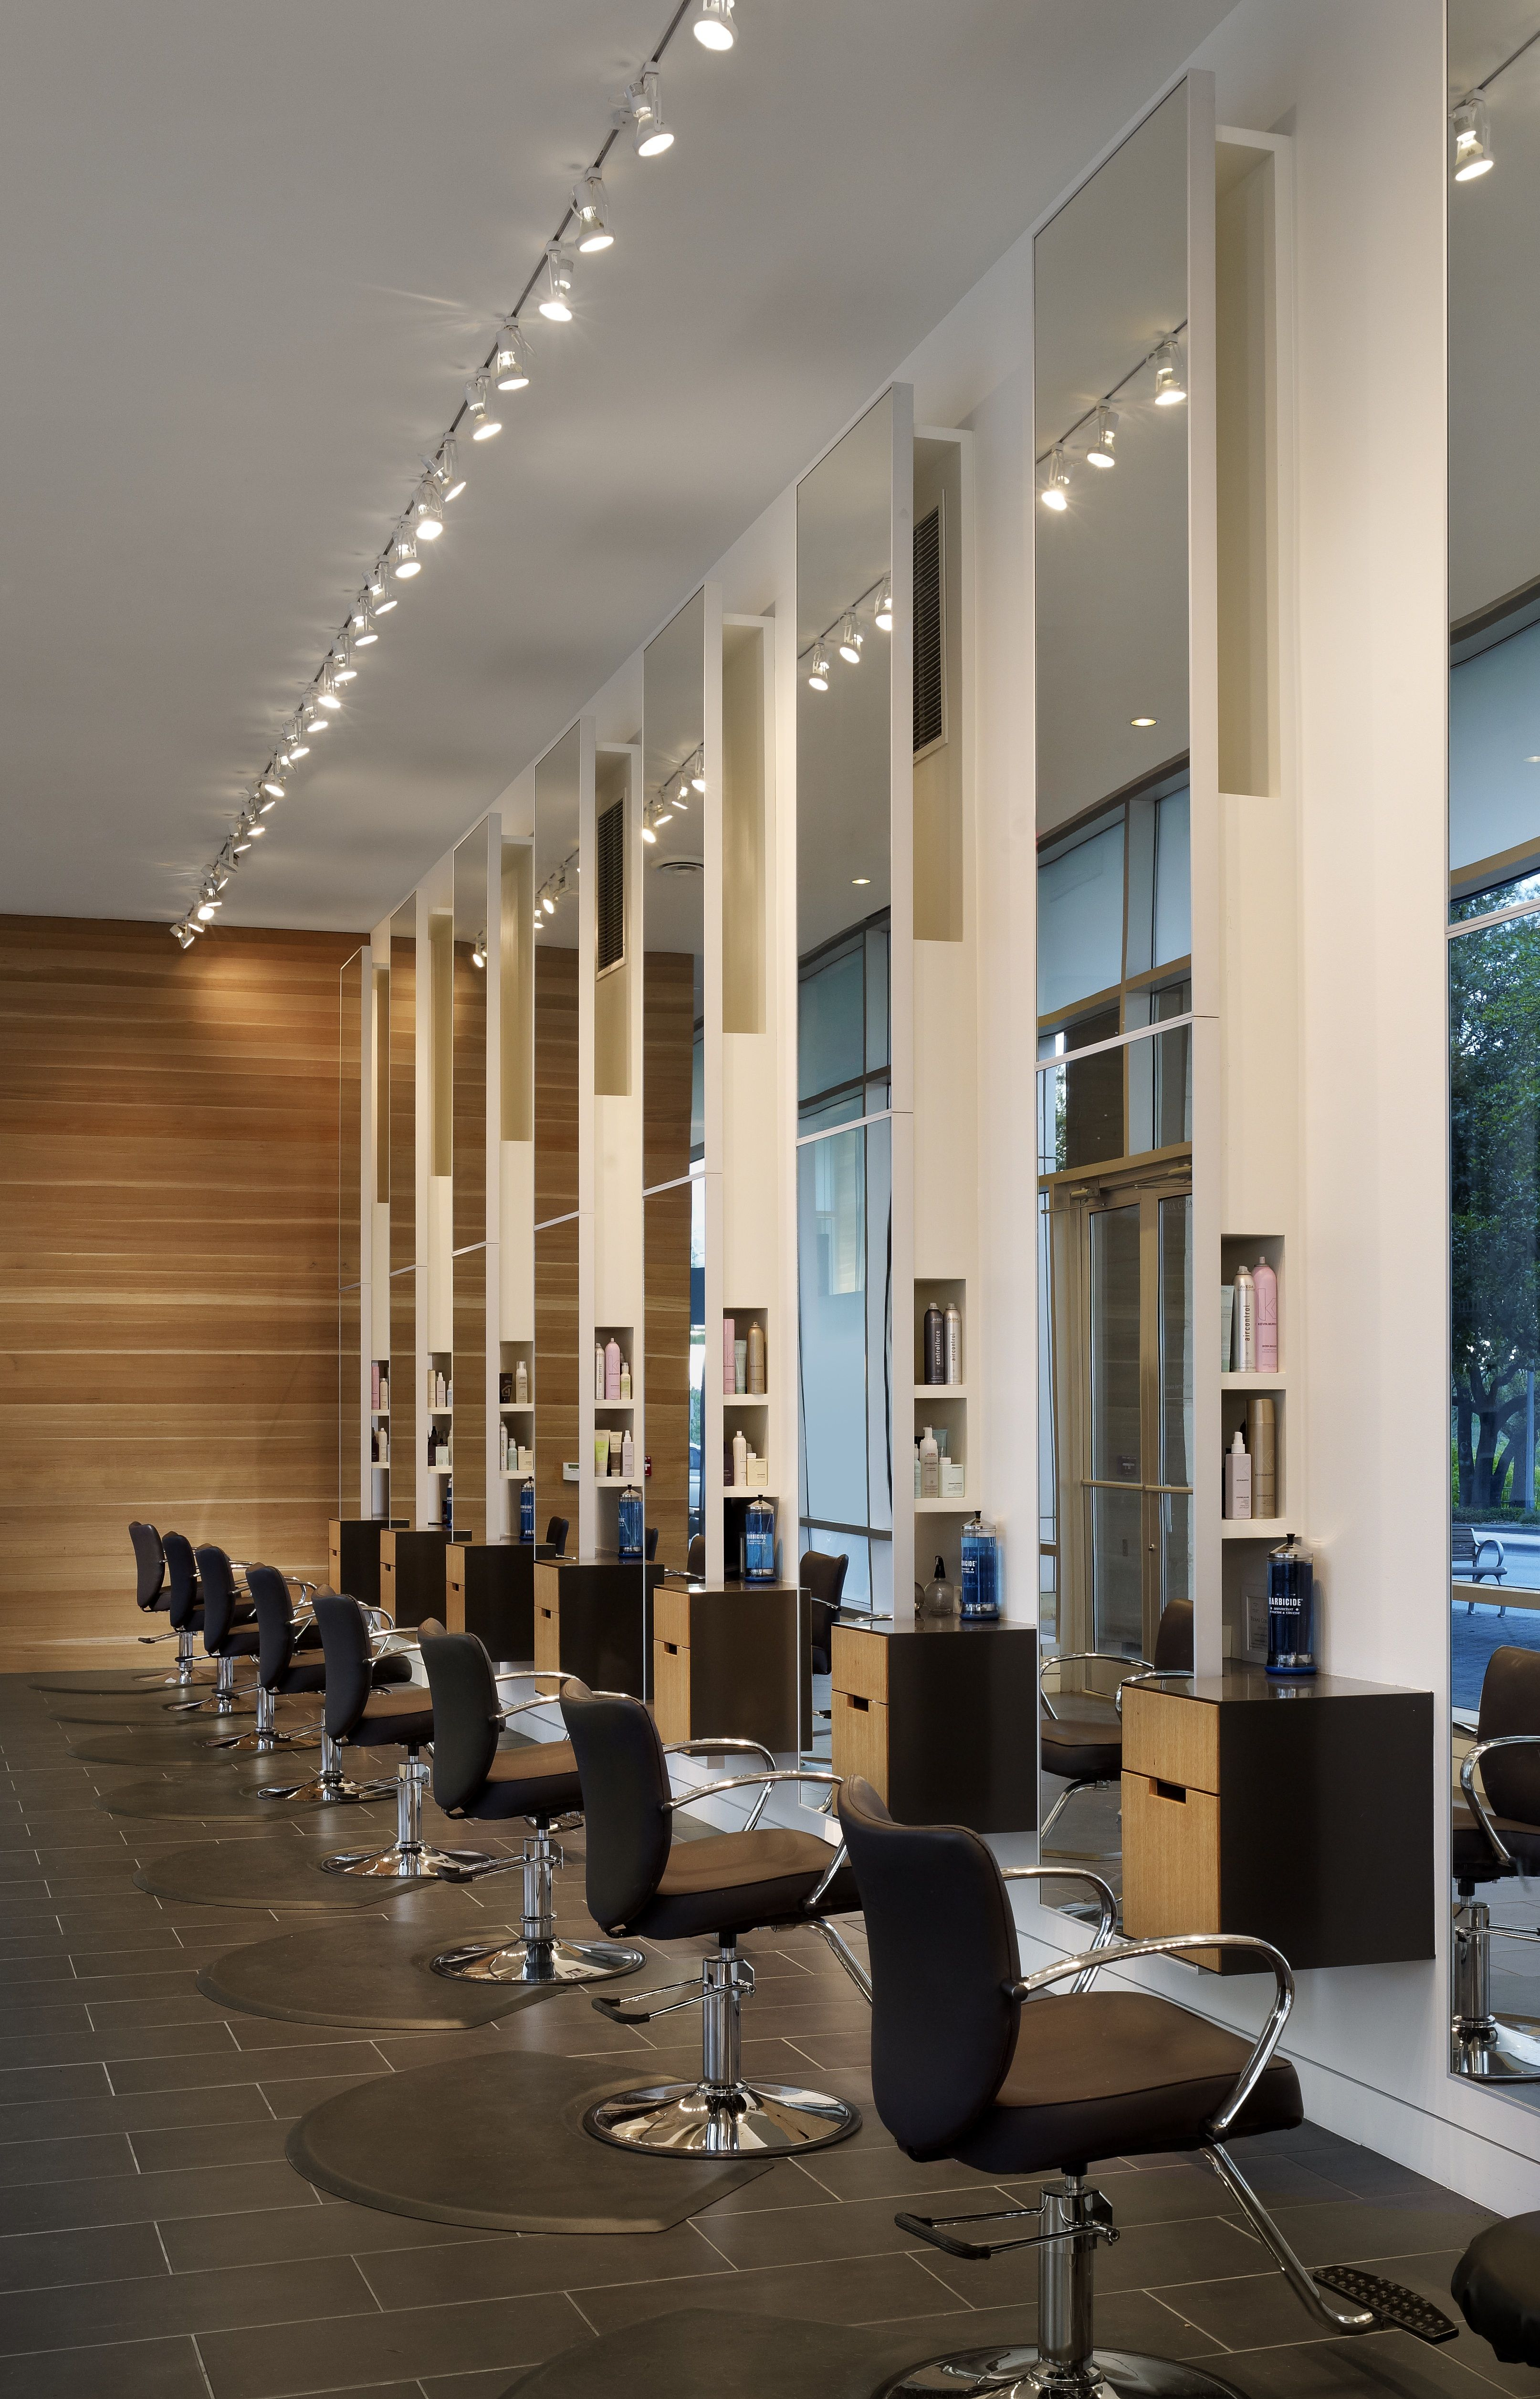 Row Of Salon Chairs In The Morning Light Barber